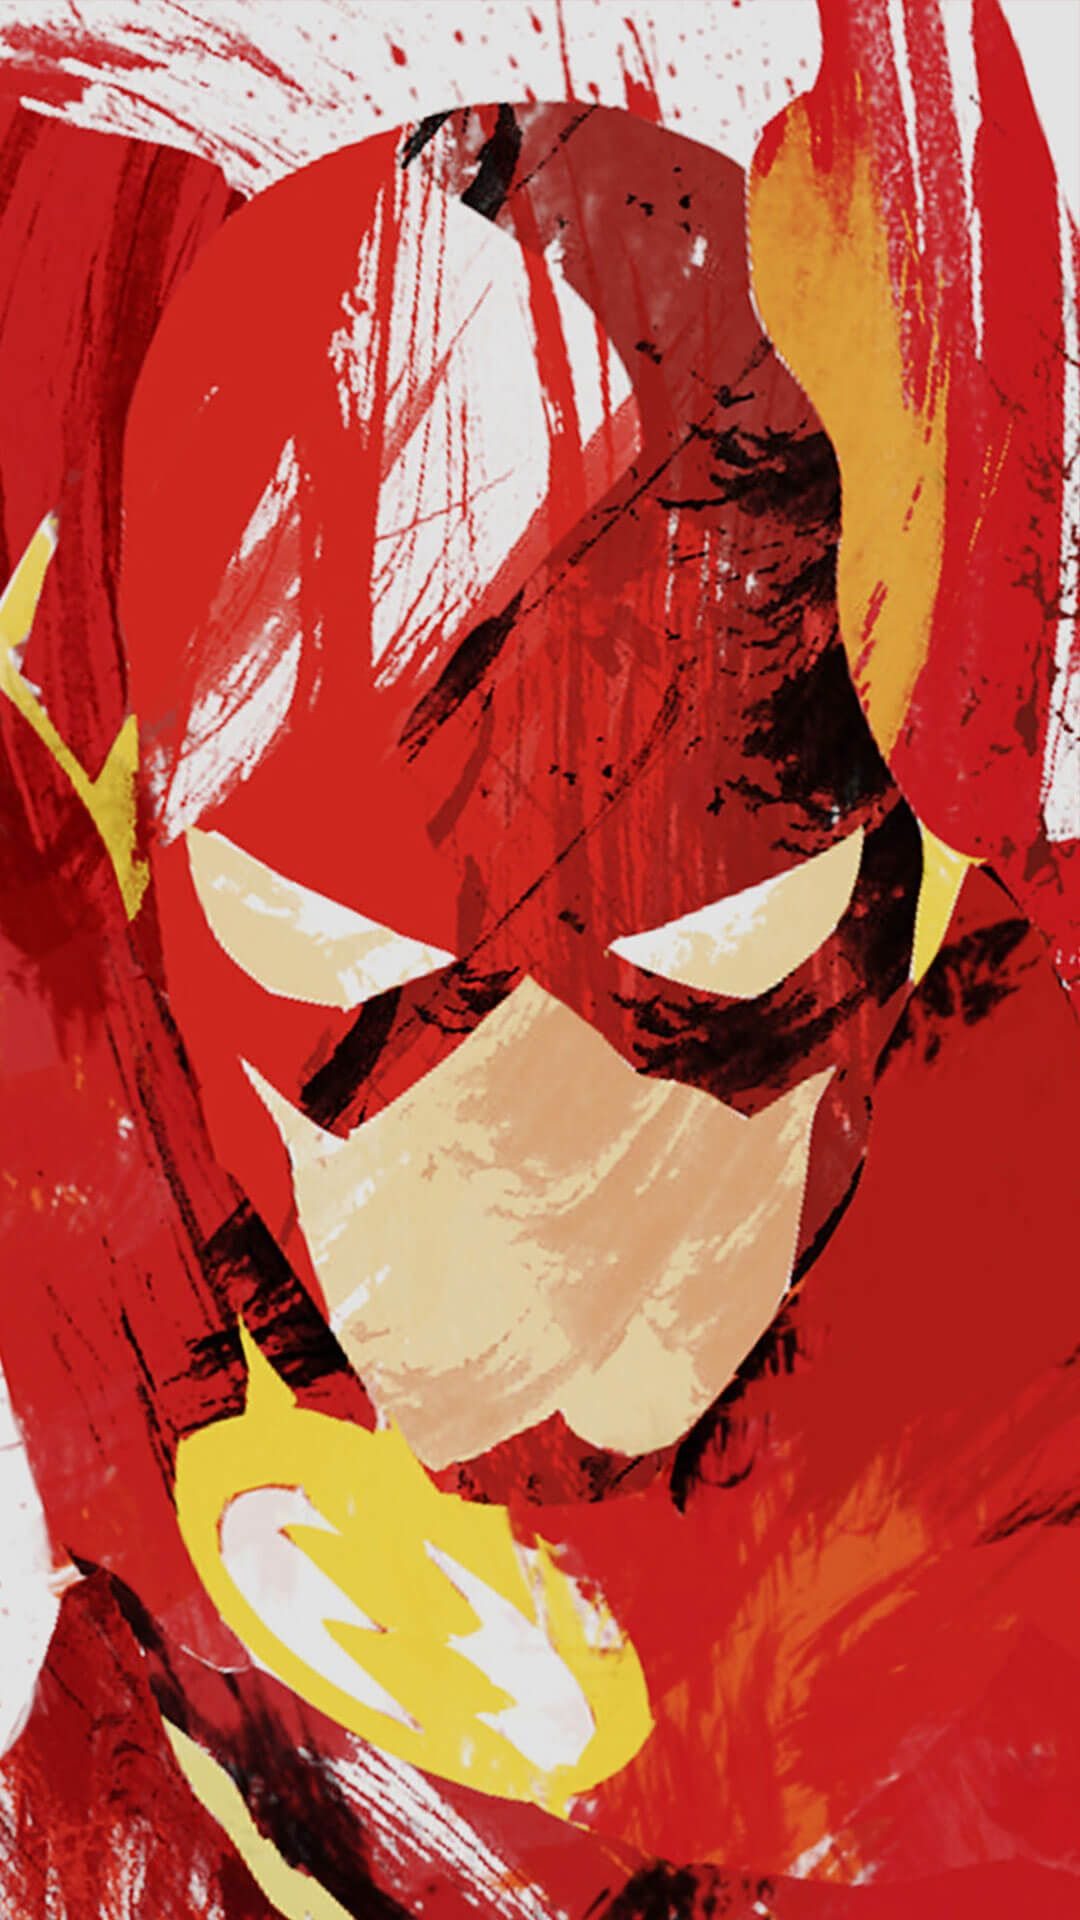 the flash wallpaper android full hd | wp 1080 x 1920 | pinterest